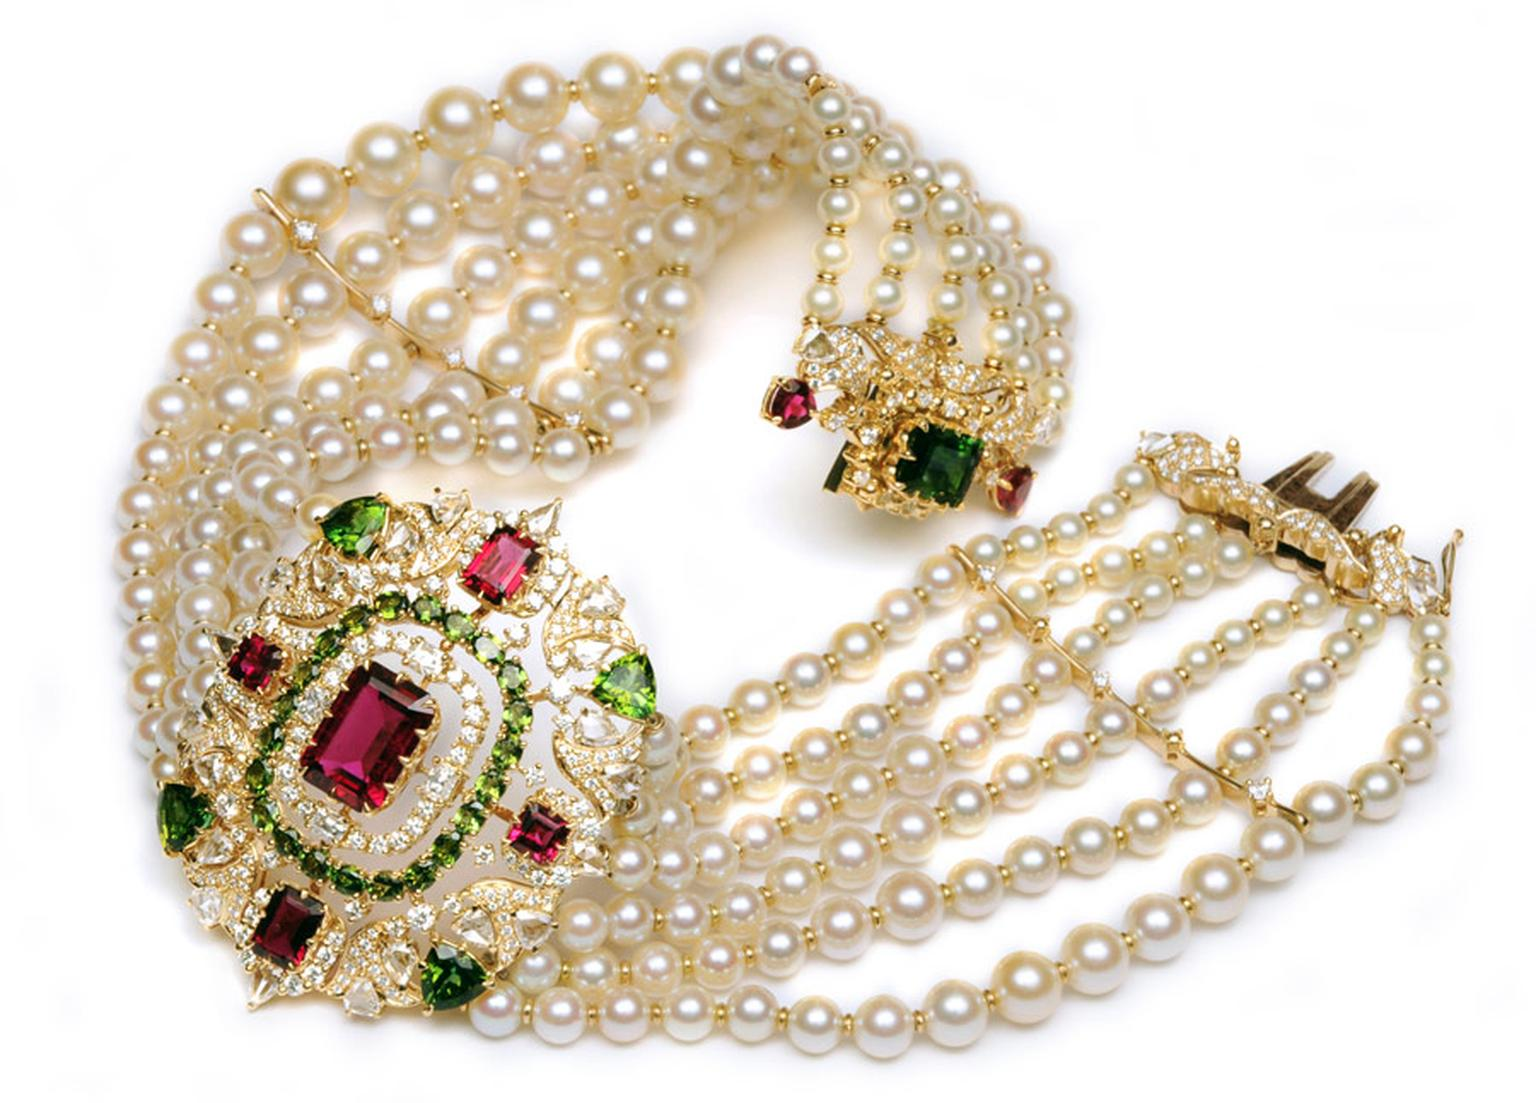 03-Choker---Nizam-collection-Ganjam